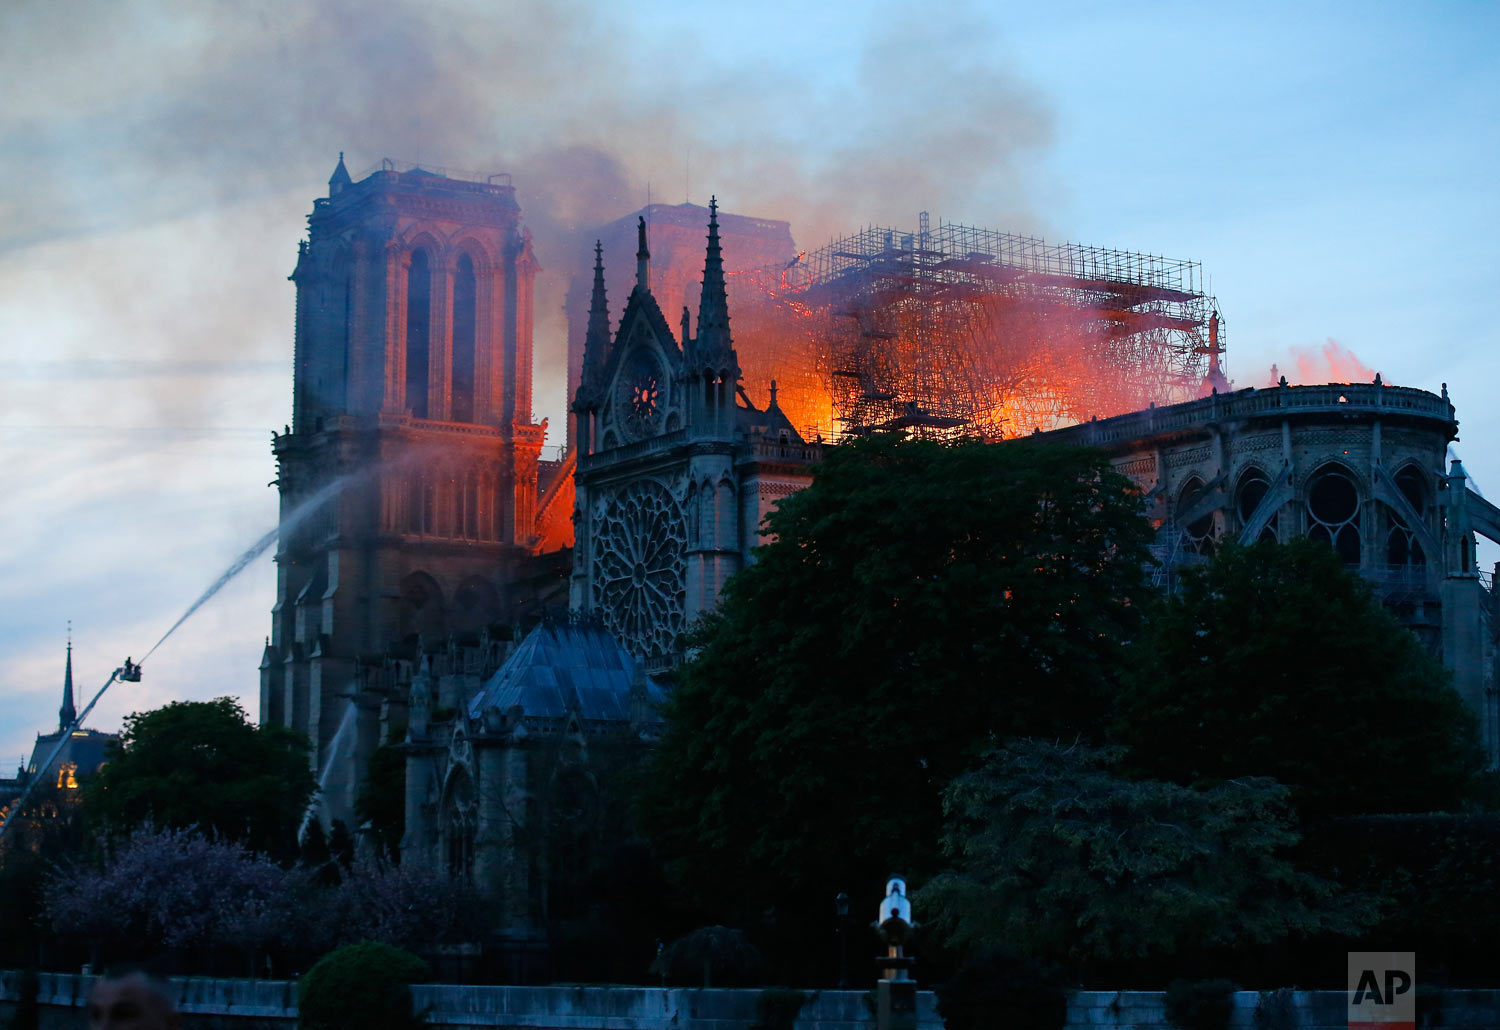 Firefighters tackle the blaze as flames and smoke rise from Notre Dame Cathedral as it burns in Paris, April 15, 2019. (AP Photo/Thibault Camus)